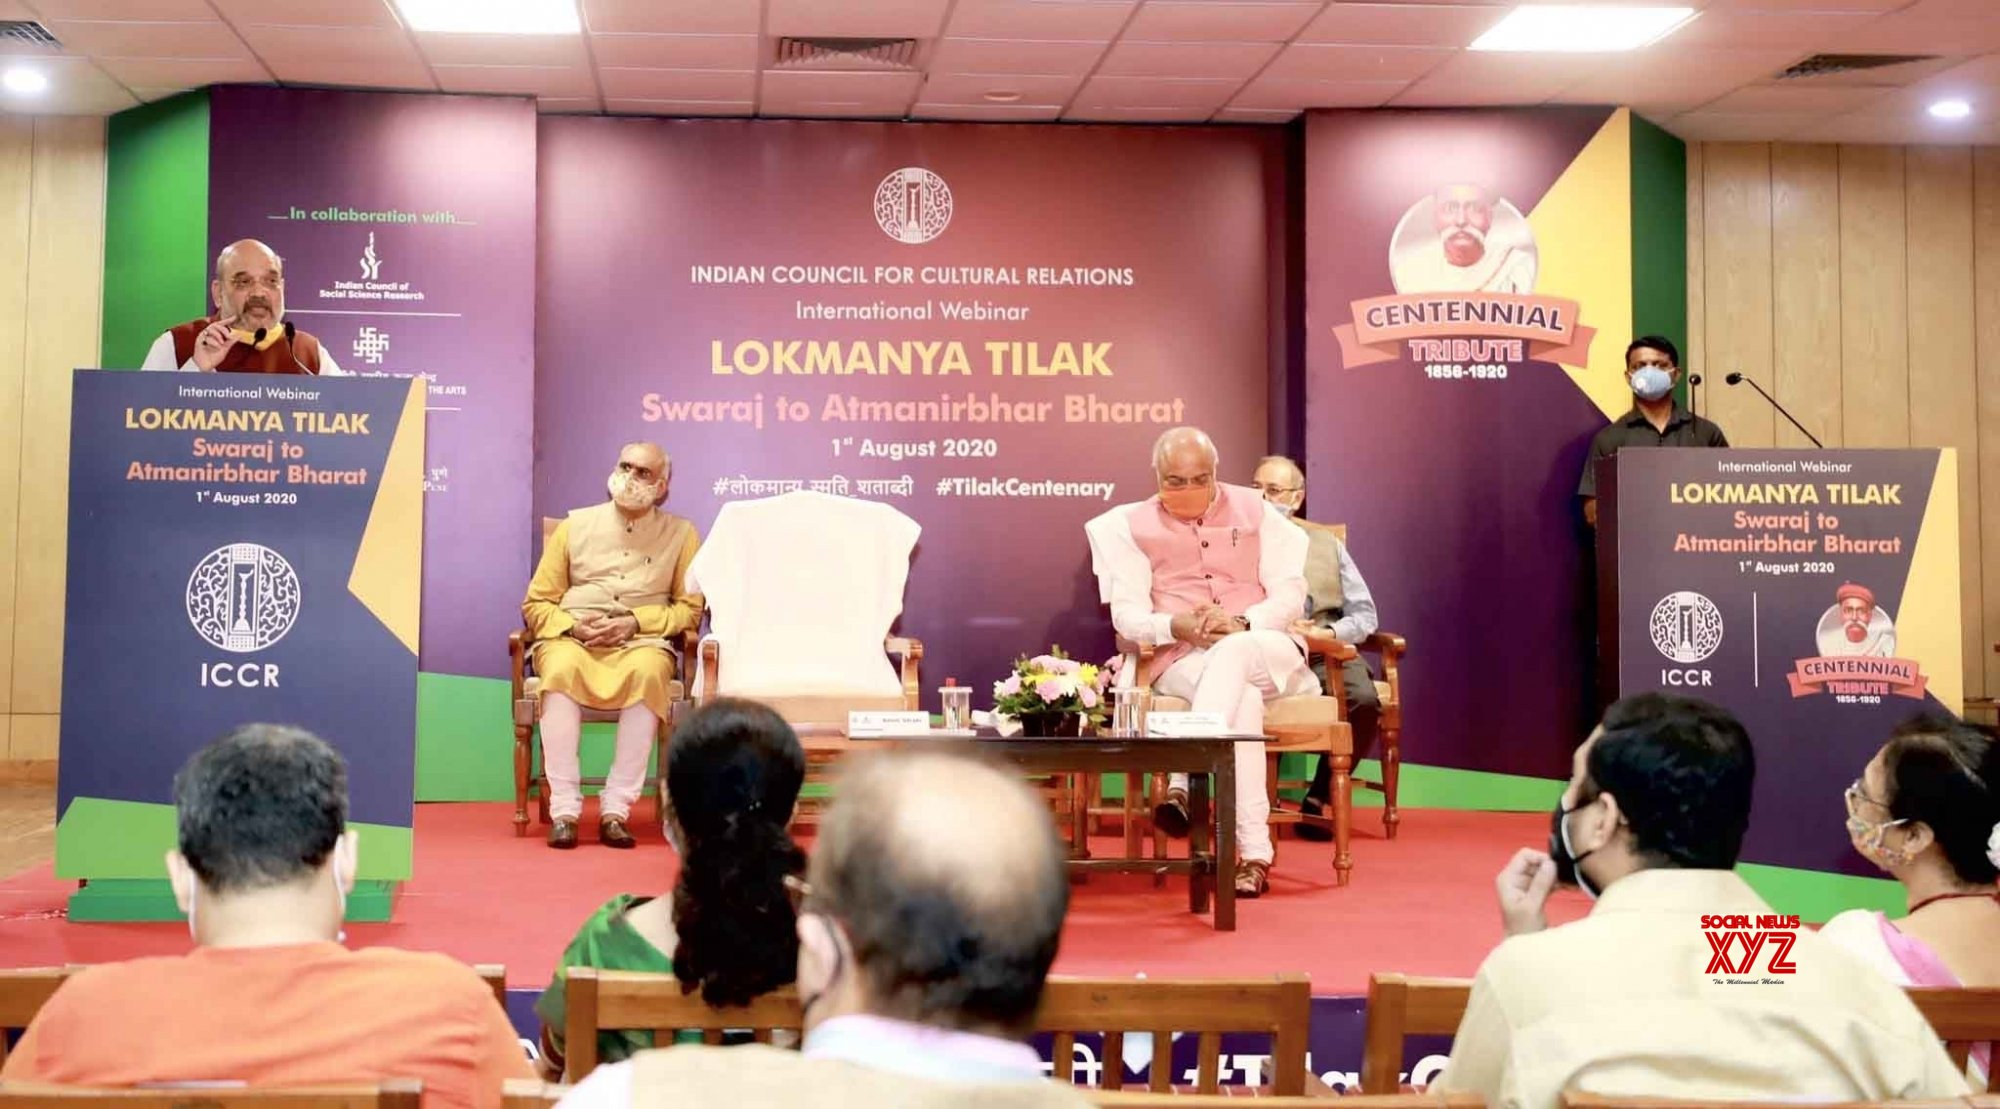 New Delhi: Amit Shah inaugurates webinar on 'Lokmanya Tilak - Swaraj to Self - Reliant India' #Gallery